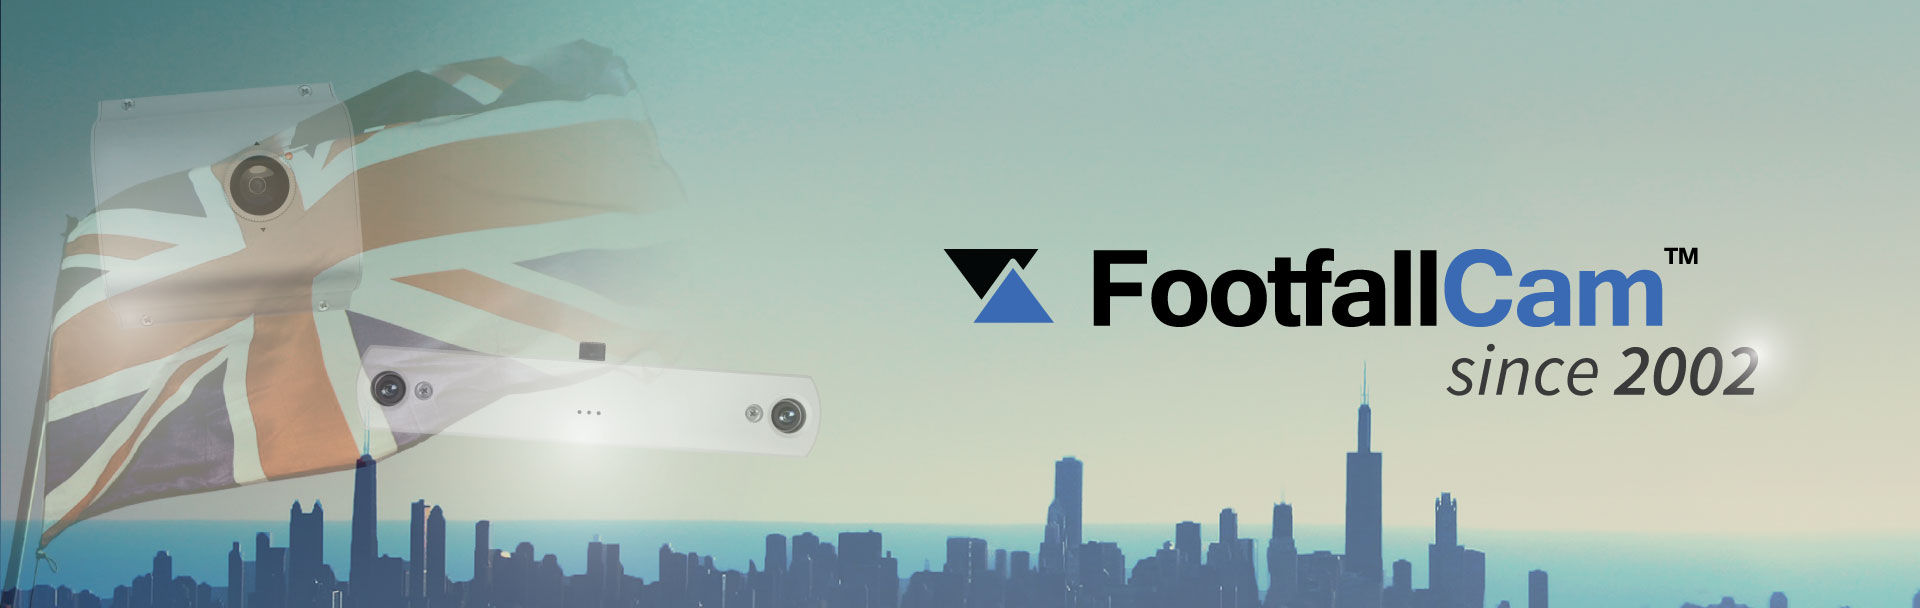 FootfallCam - History, people counting, people counter, footfall counter